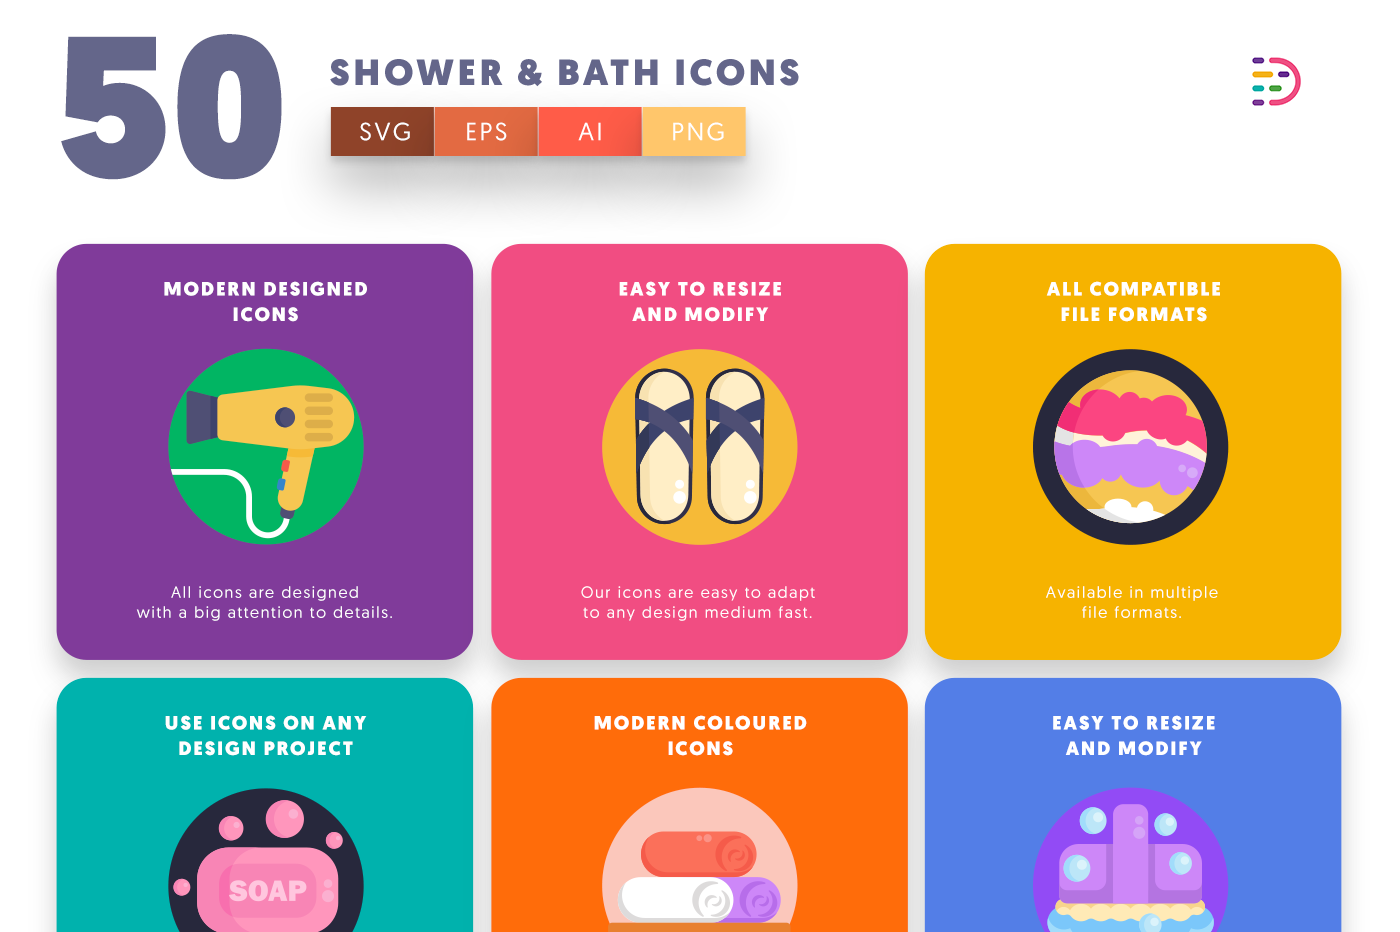 50 Shower & Bath Icons with colored backgrounds